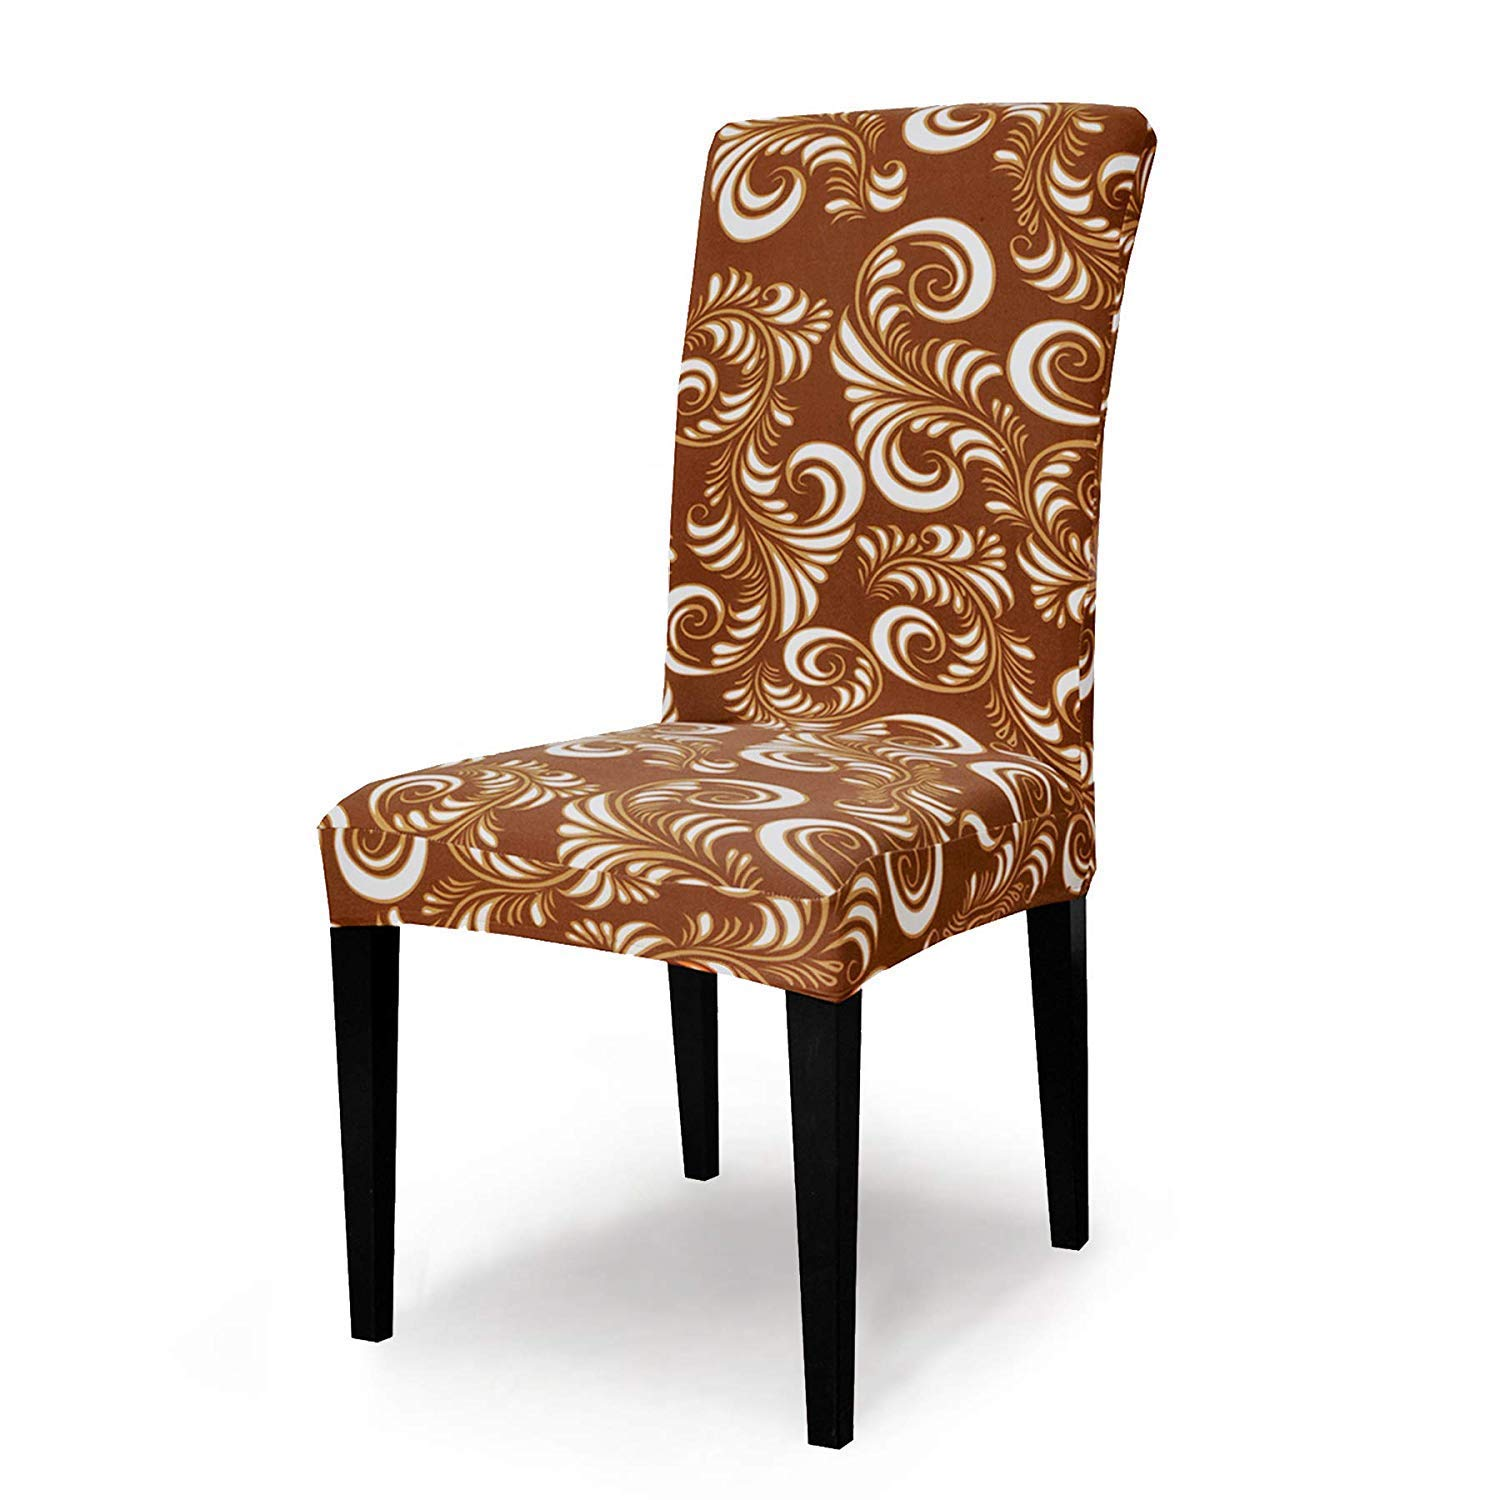 chair cover004 TIKAMI Stretch Chair Slipcovers for Dining Room Seat Covers Washable Spandex Chair Furniture Protector 6pcs, Gold Flower